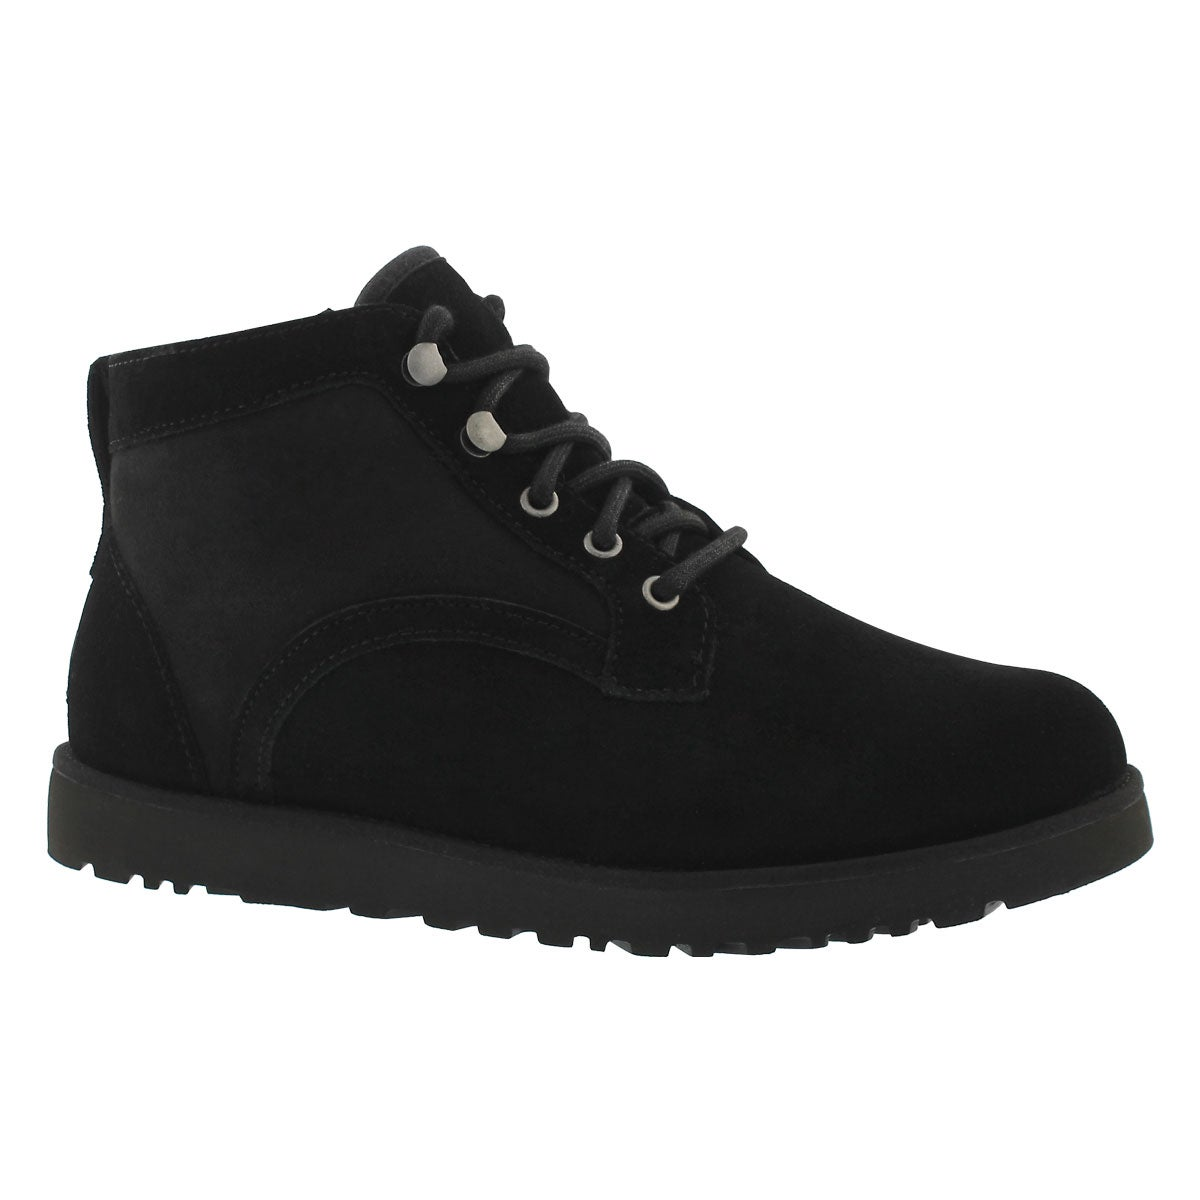 Women's BETHANY black lace up boots